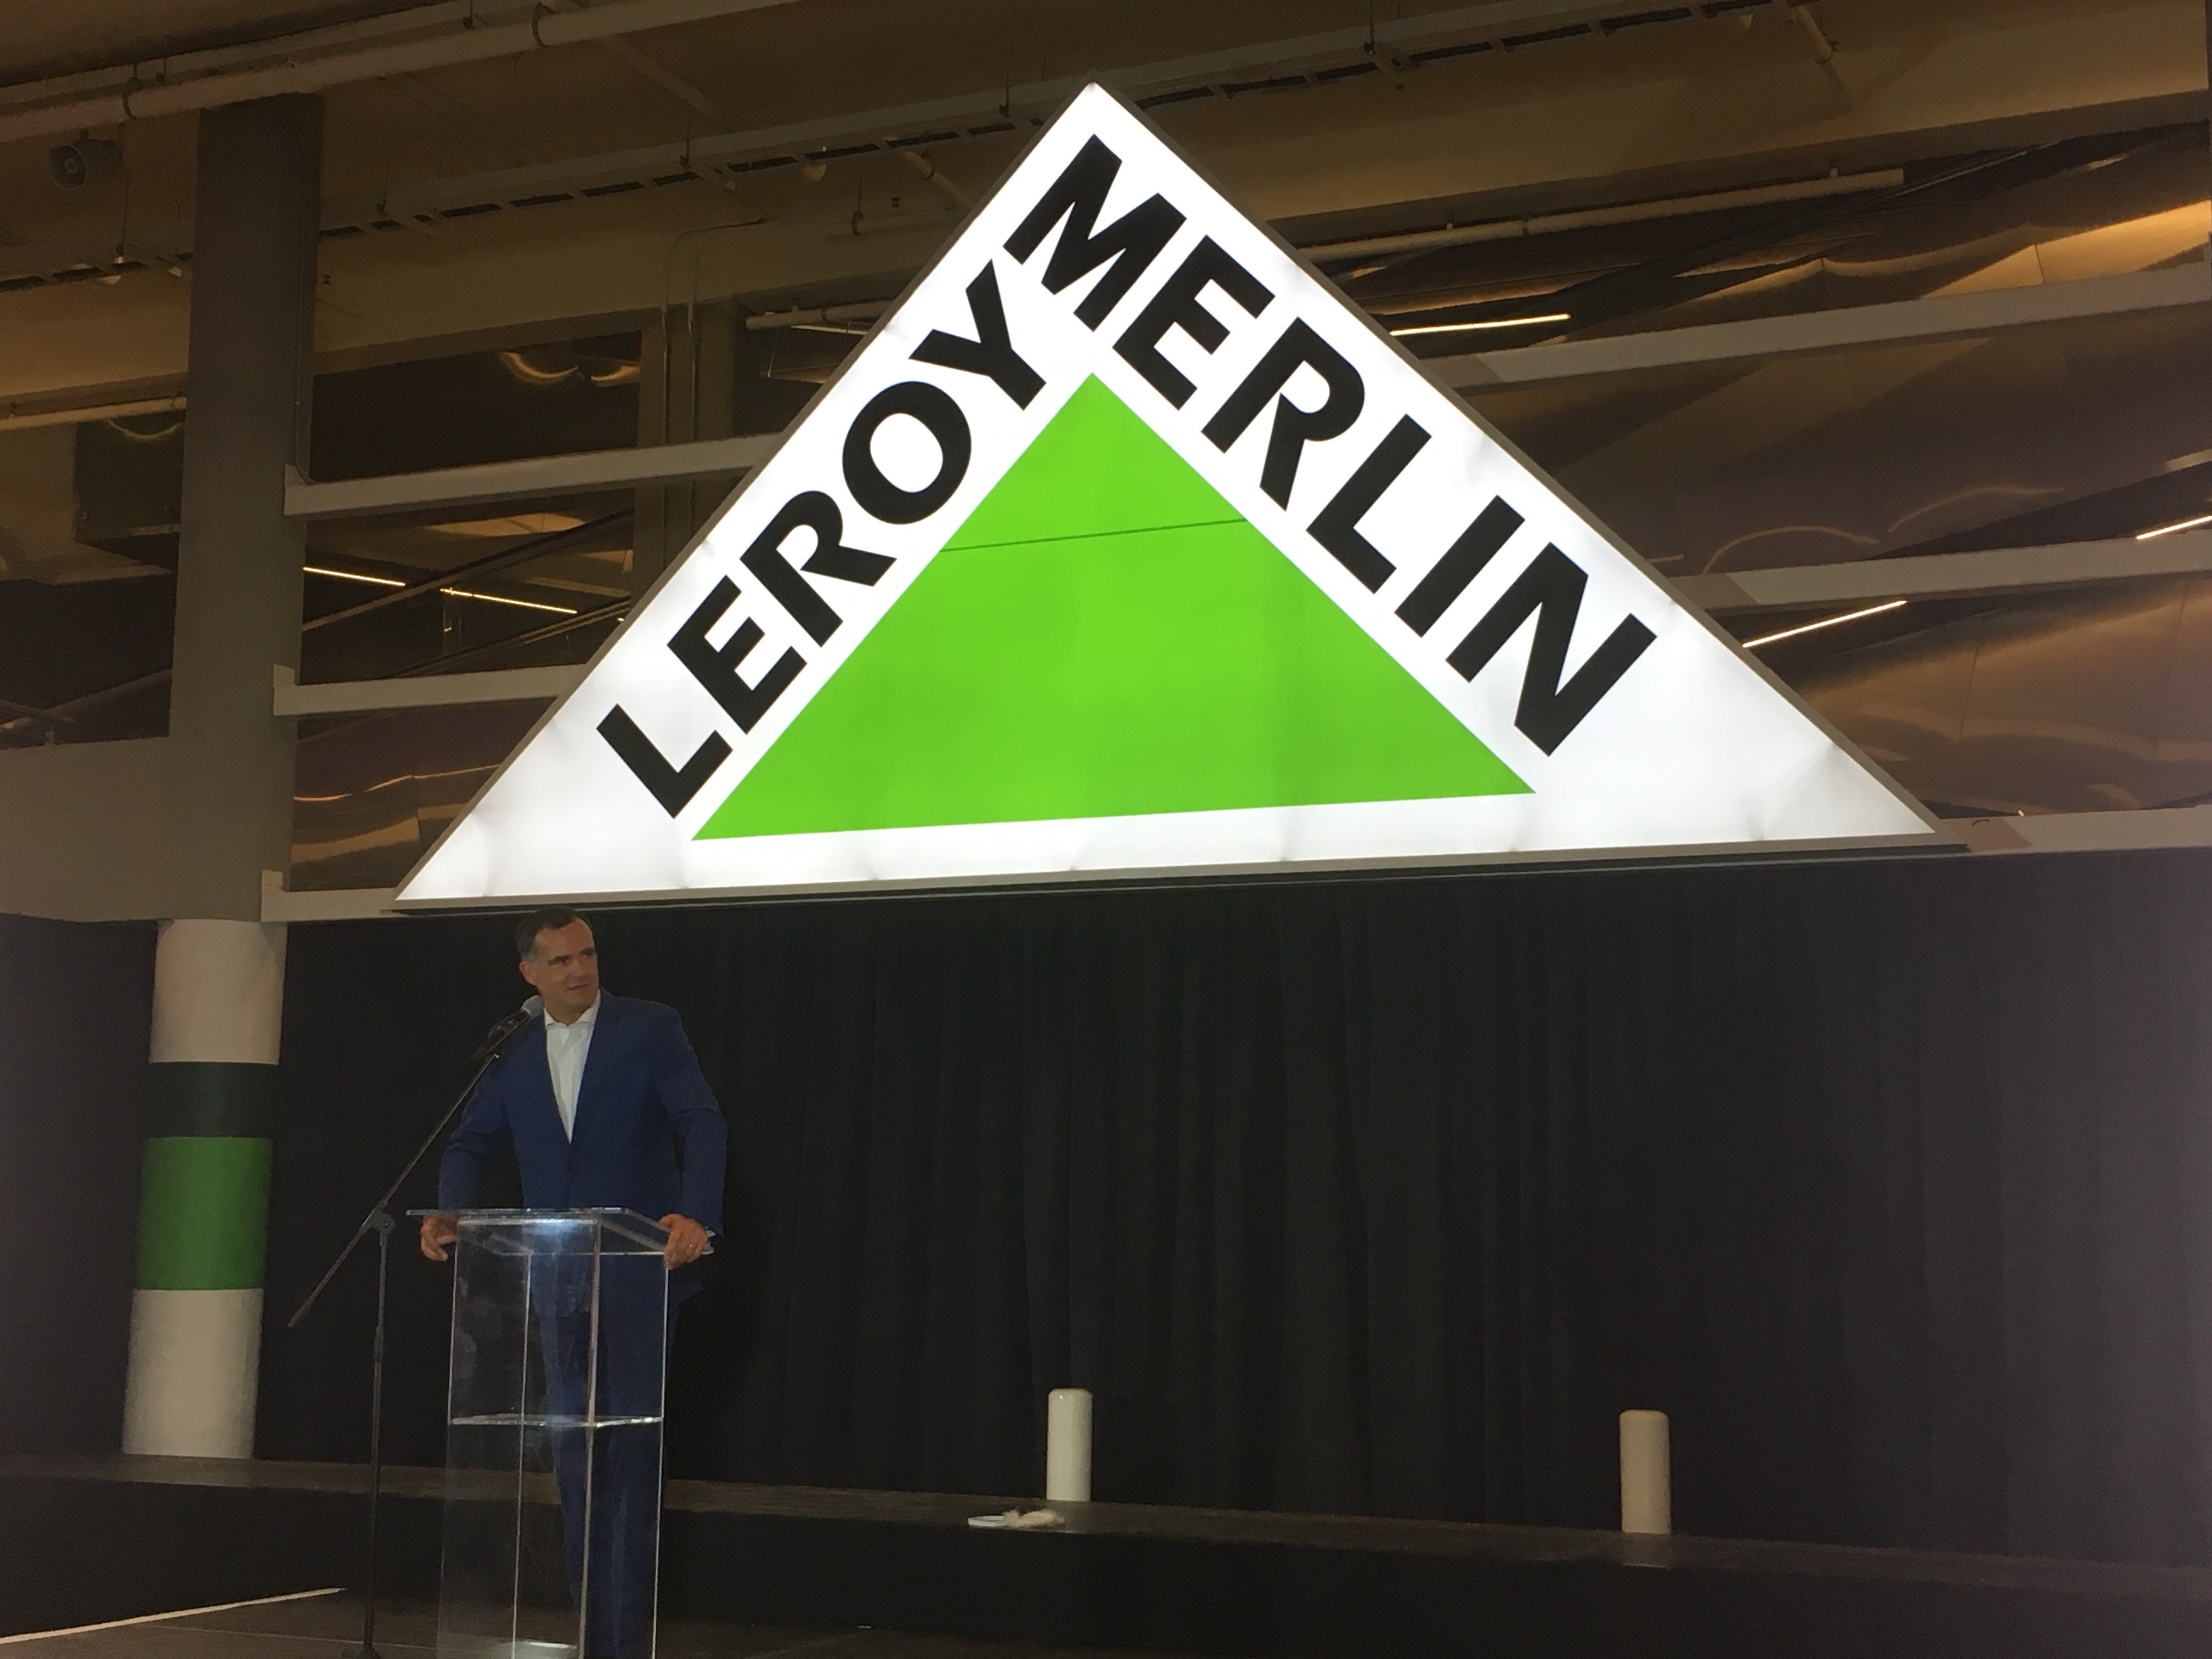 The First Leroy Merlin In South Africa Has Opened French